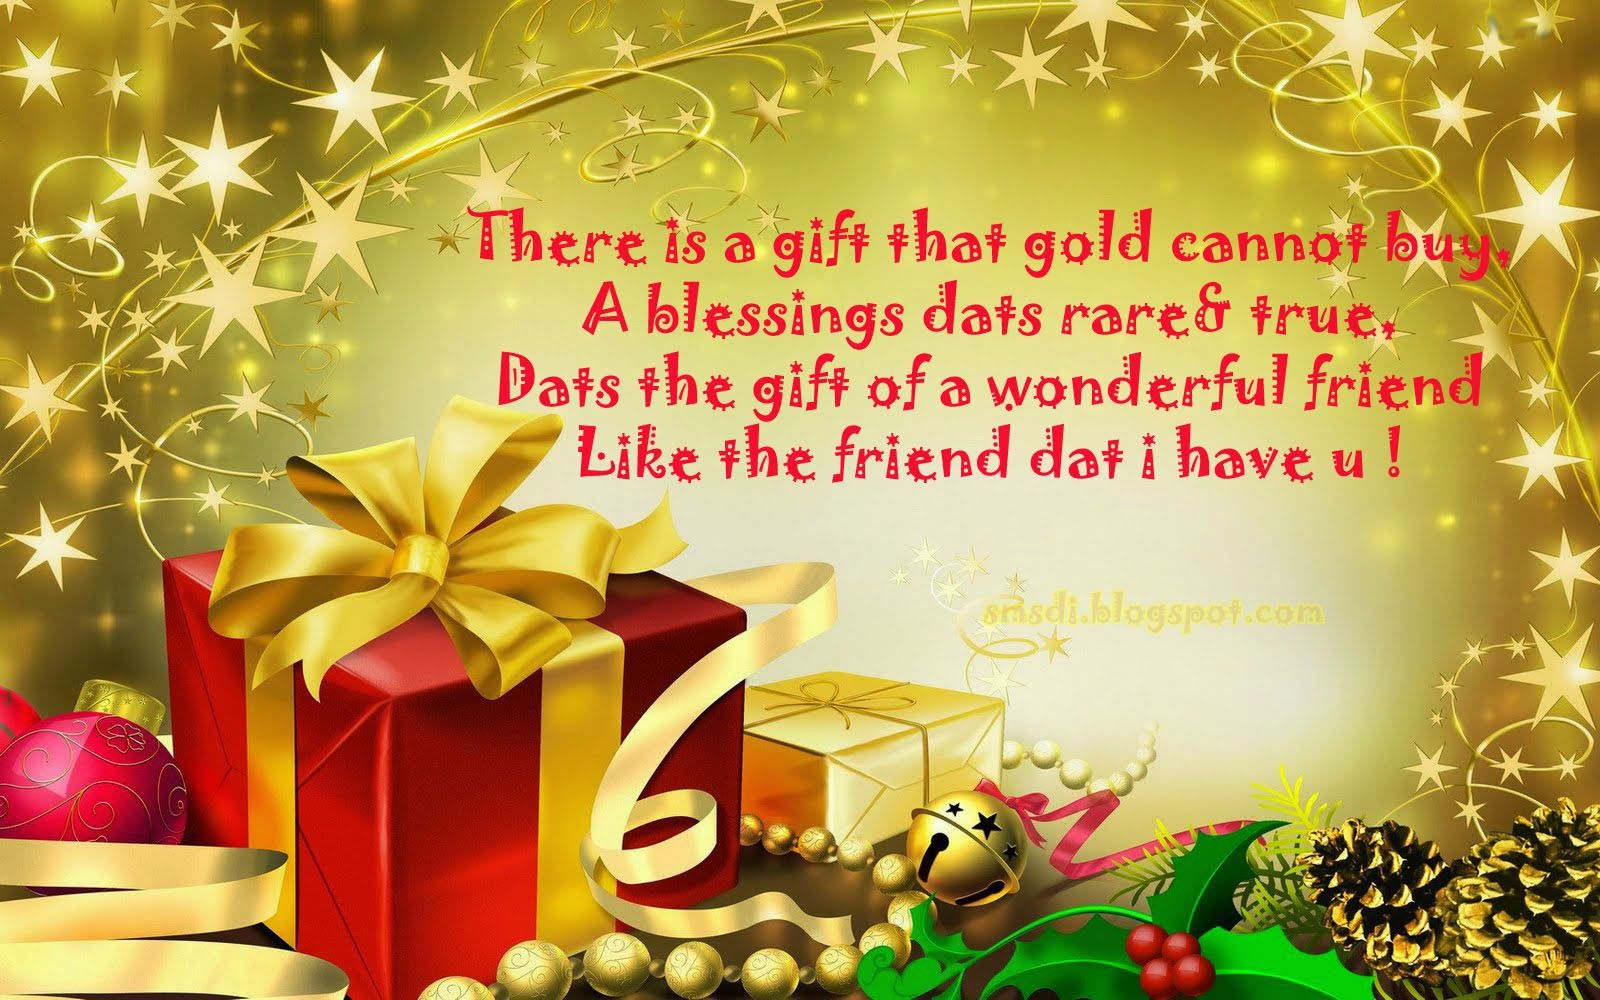 Christmas Quotes About Friendship Sms Best Gifts Of Friends  Sms Dialogue  Pinterest  Birthday